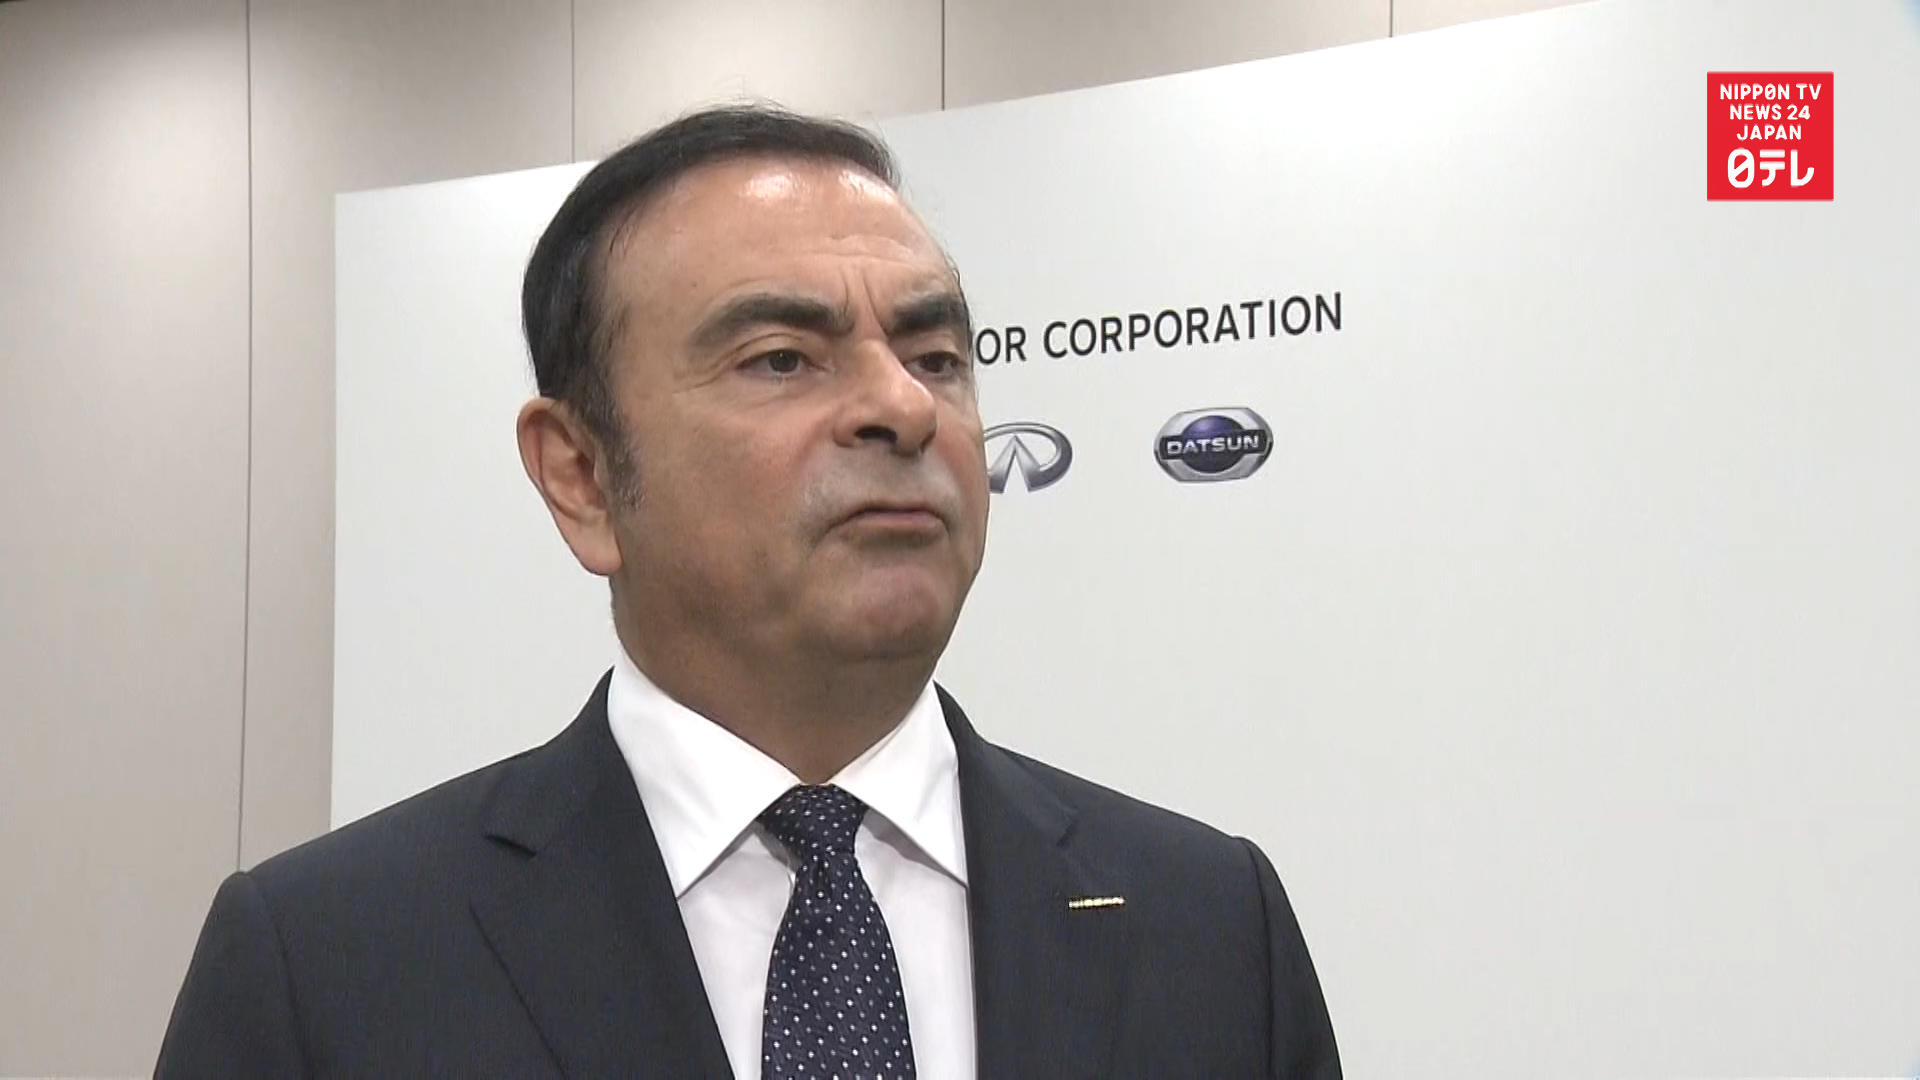 Ghosn's trial in Japan virtually stops